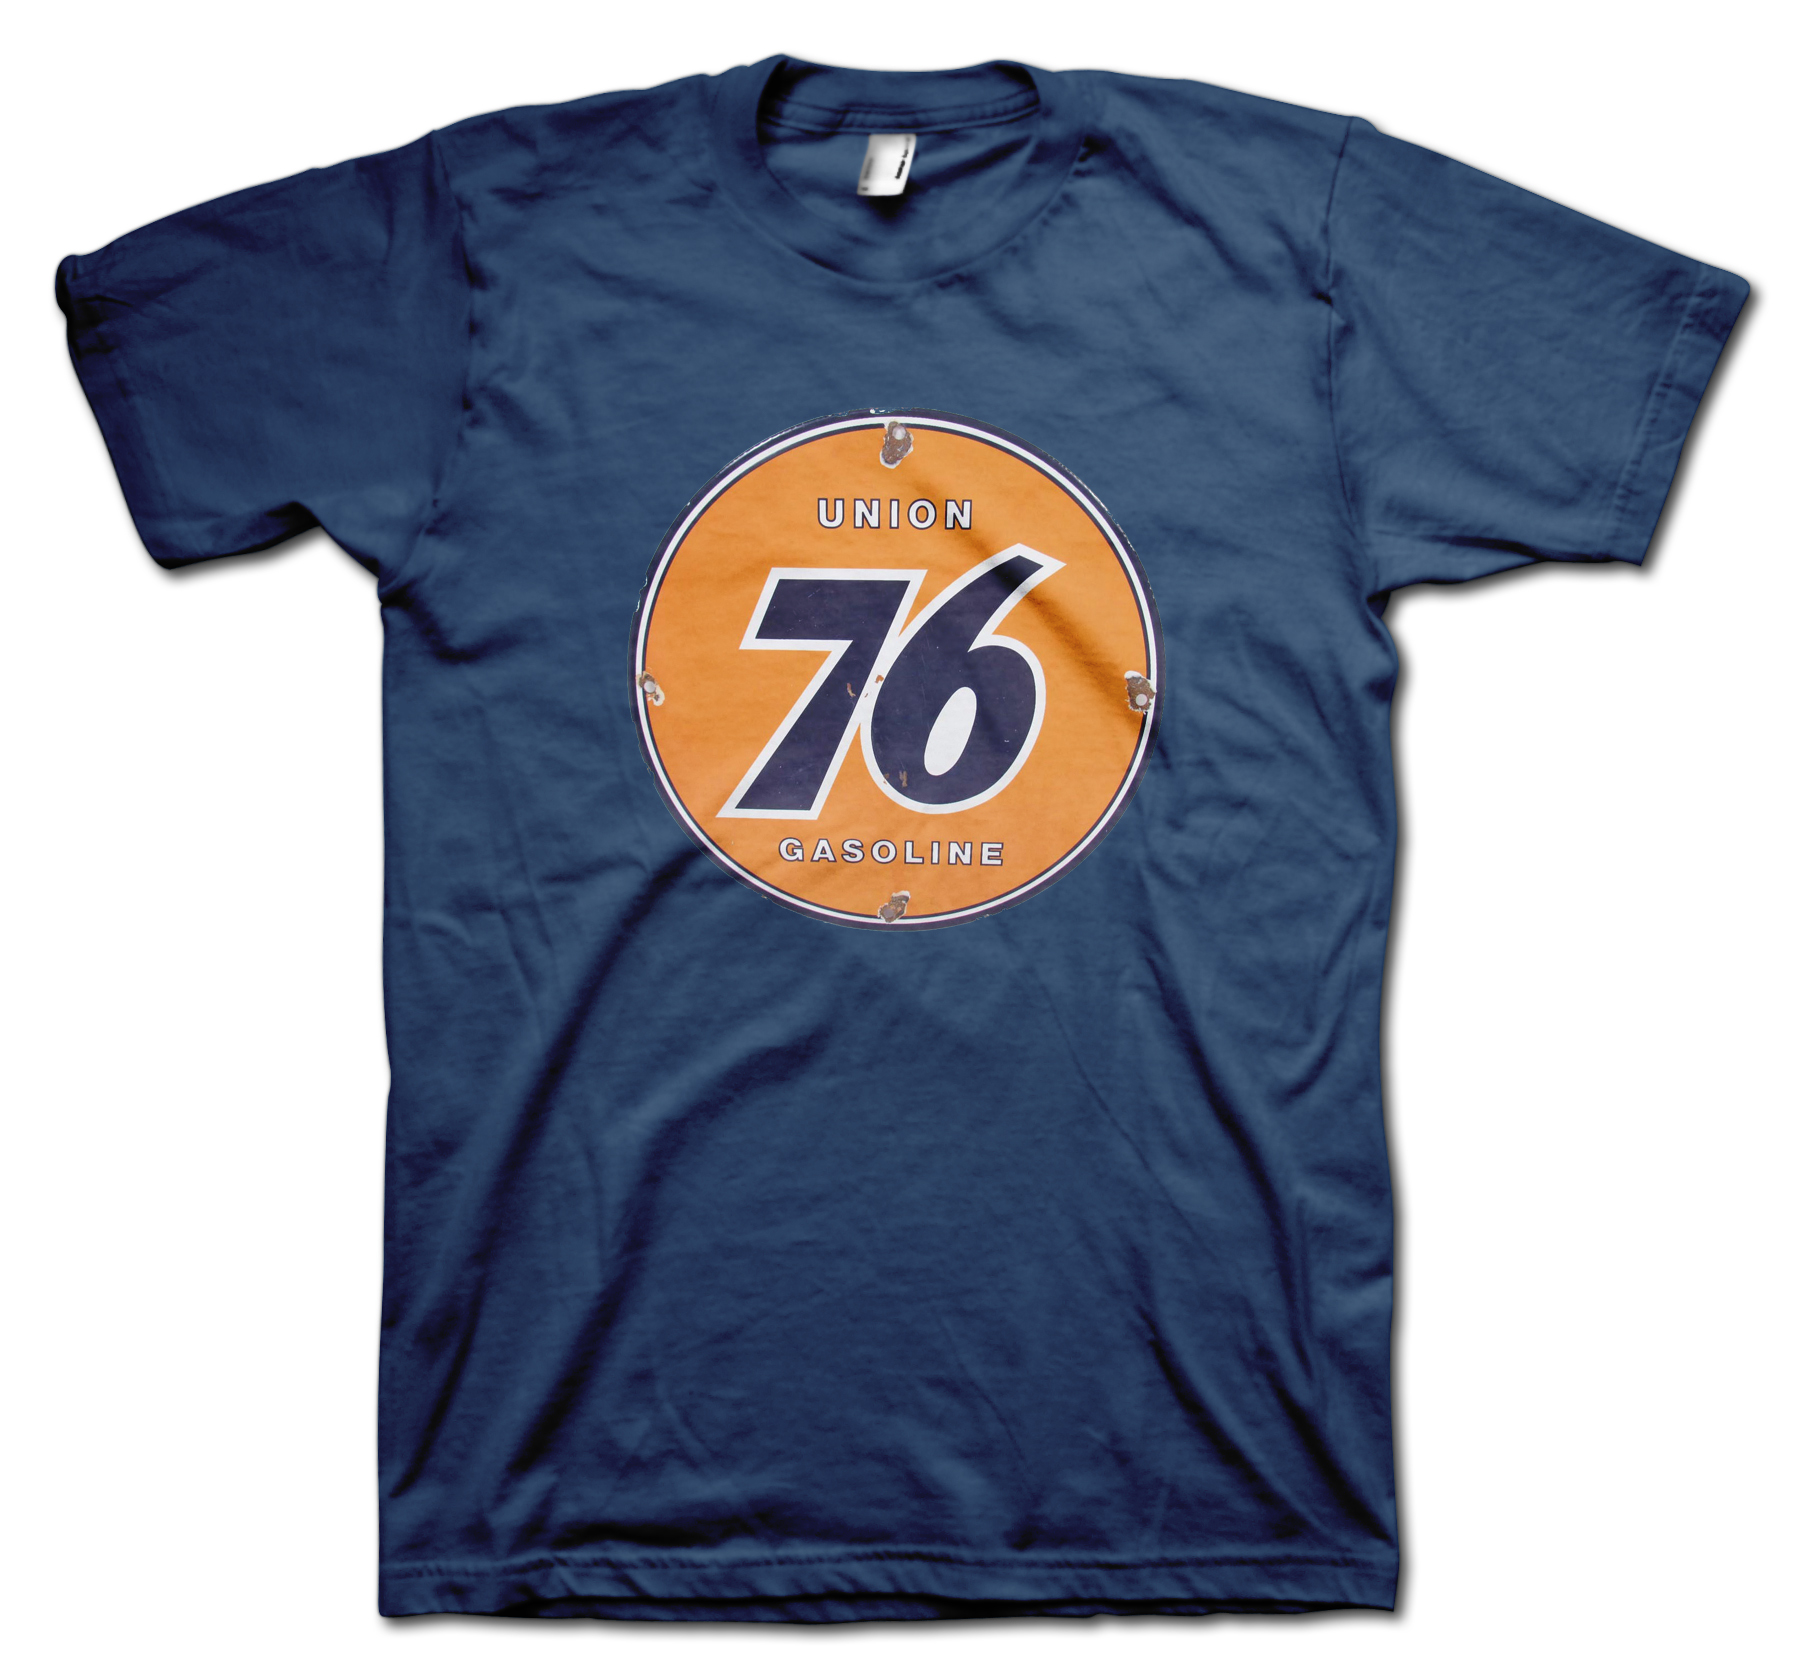 You Call It Junk And We Call It Treasure additionally Union 76 Retro T Shirt as well Ford Logo Wallpapers also 4762248321 moreover The Simpsons As Naruto Characters Wallpaper 213323. on ford slogan